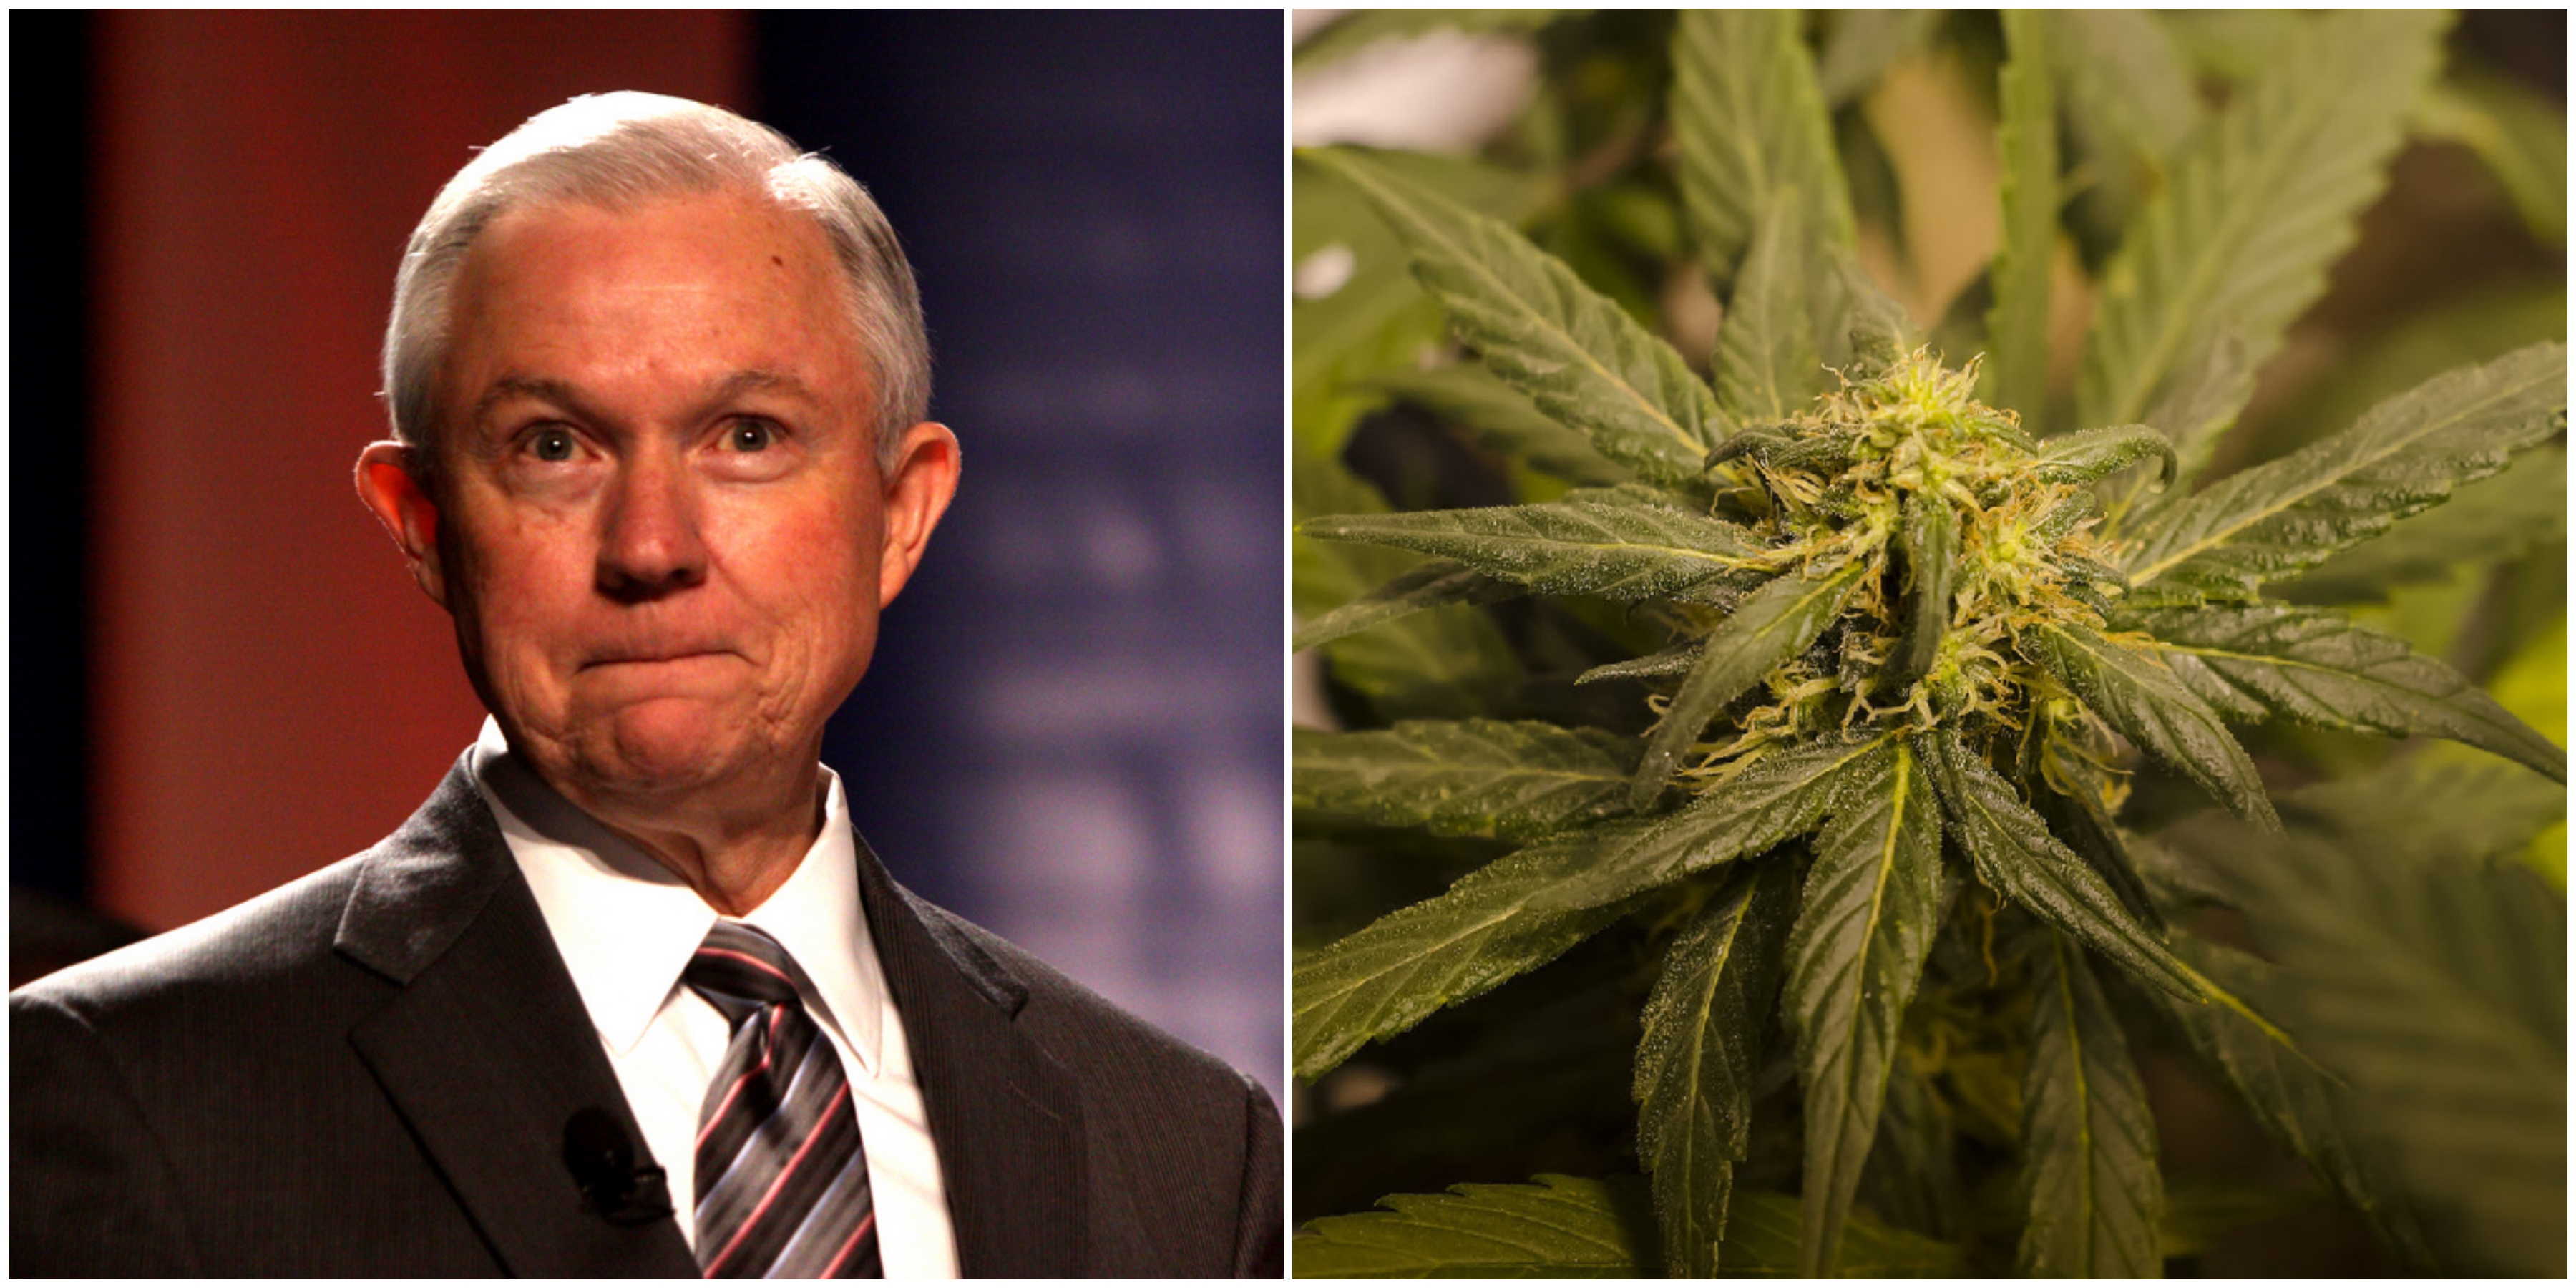 Trump administration aims to crack down on legal marijuana